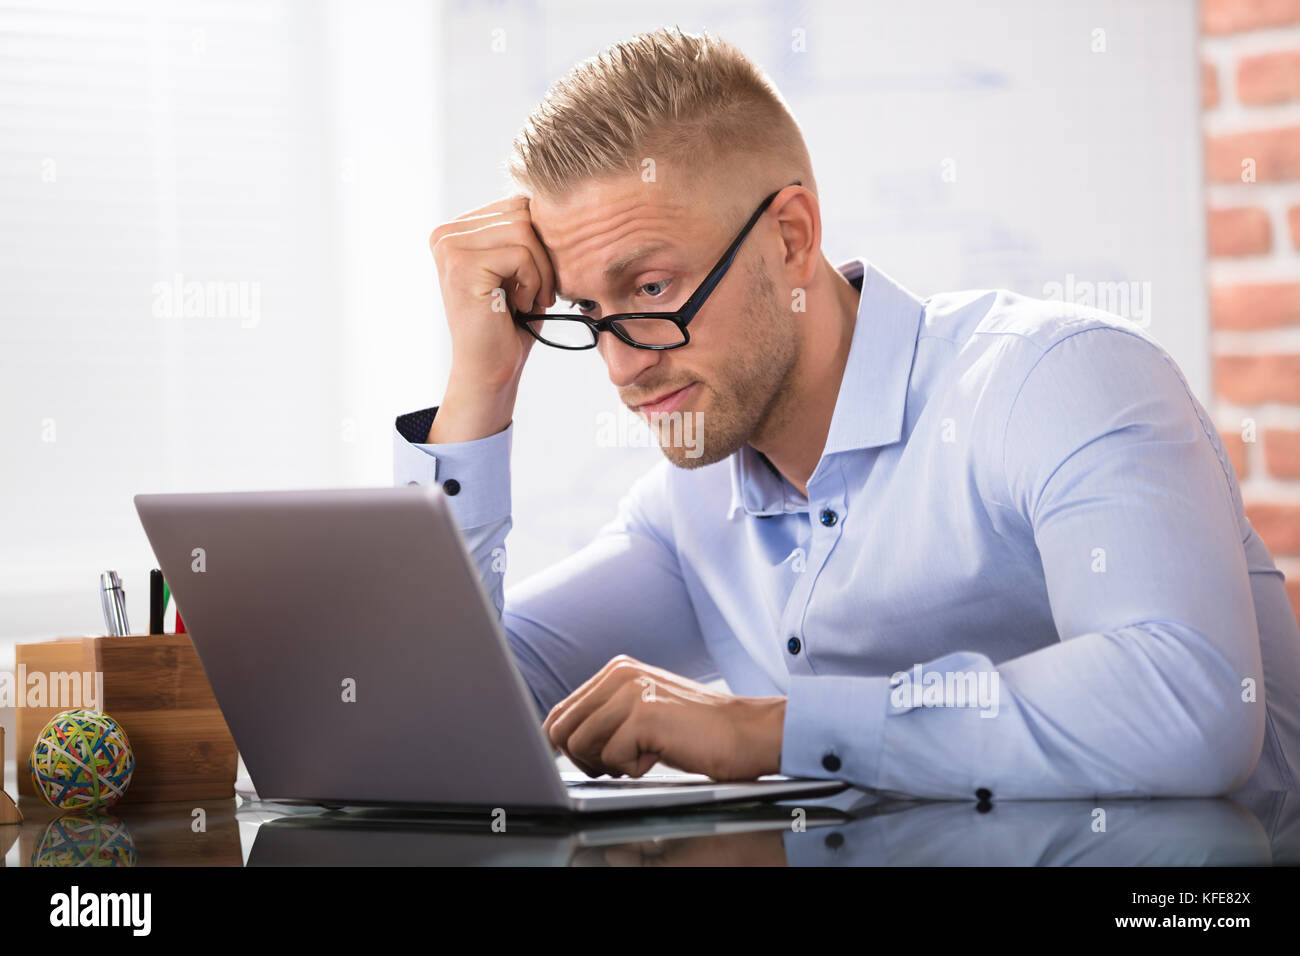 Contemplated Businessman Sitting With Laptop At Workplace - Stock Image